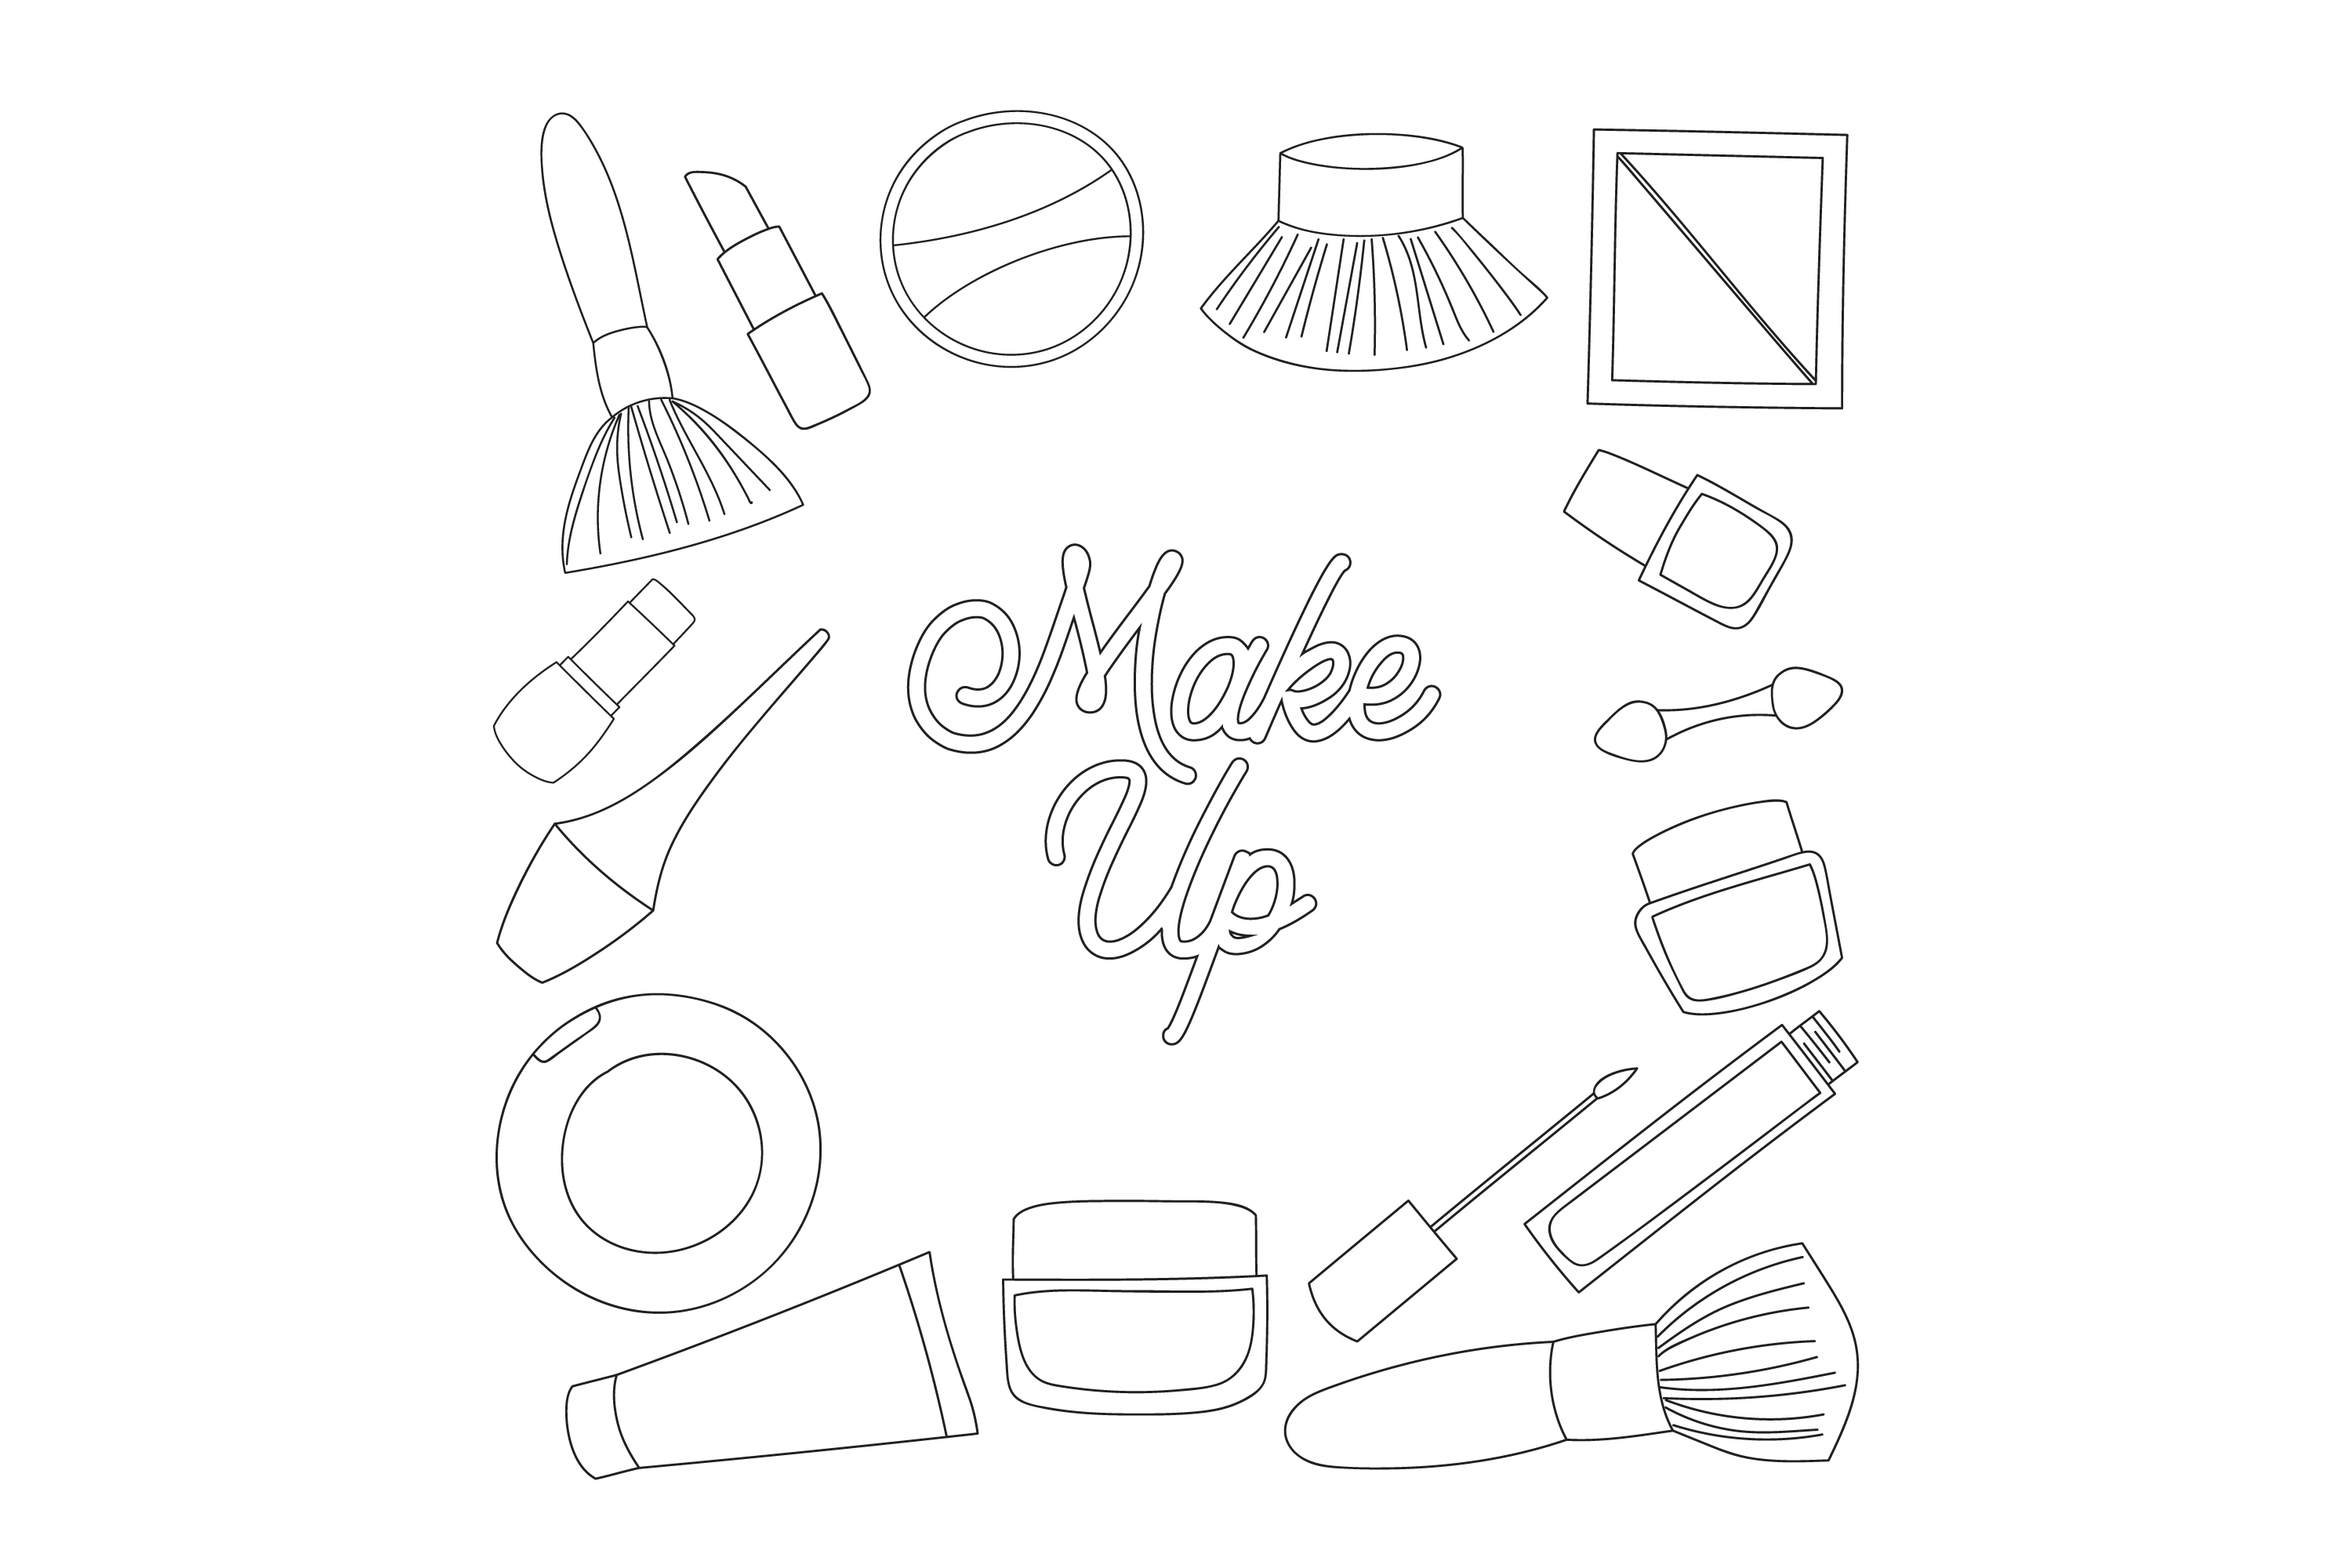 Download Free 519643 Graphics 2020 Page 578 Of 3511 Creative Fabrica for Cricut Explore, Silhouette and other cutting machines.